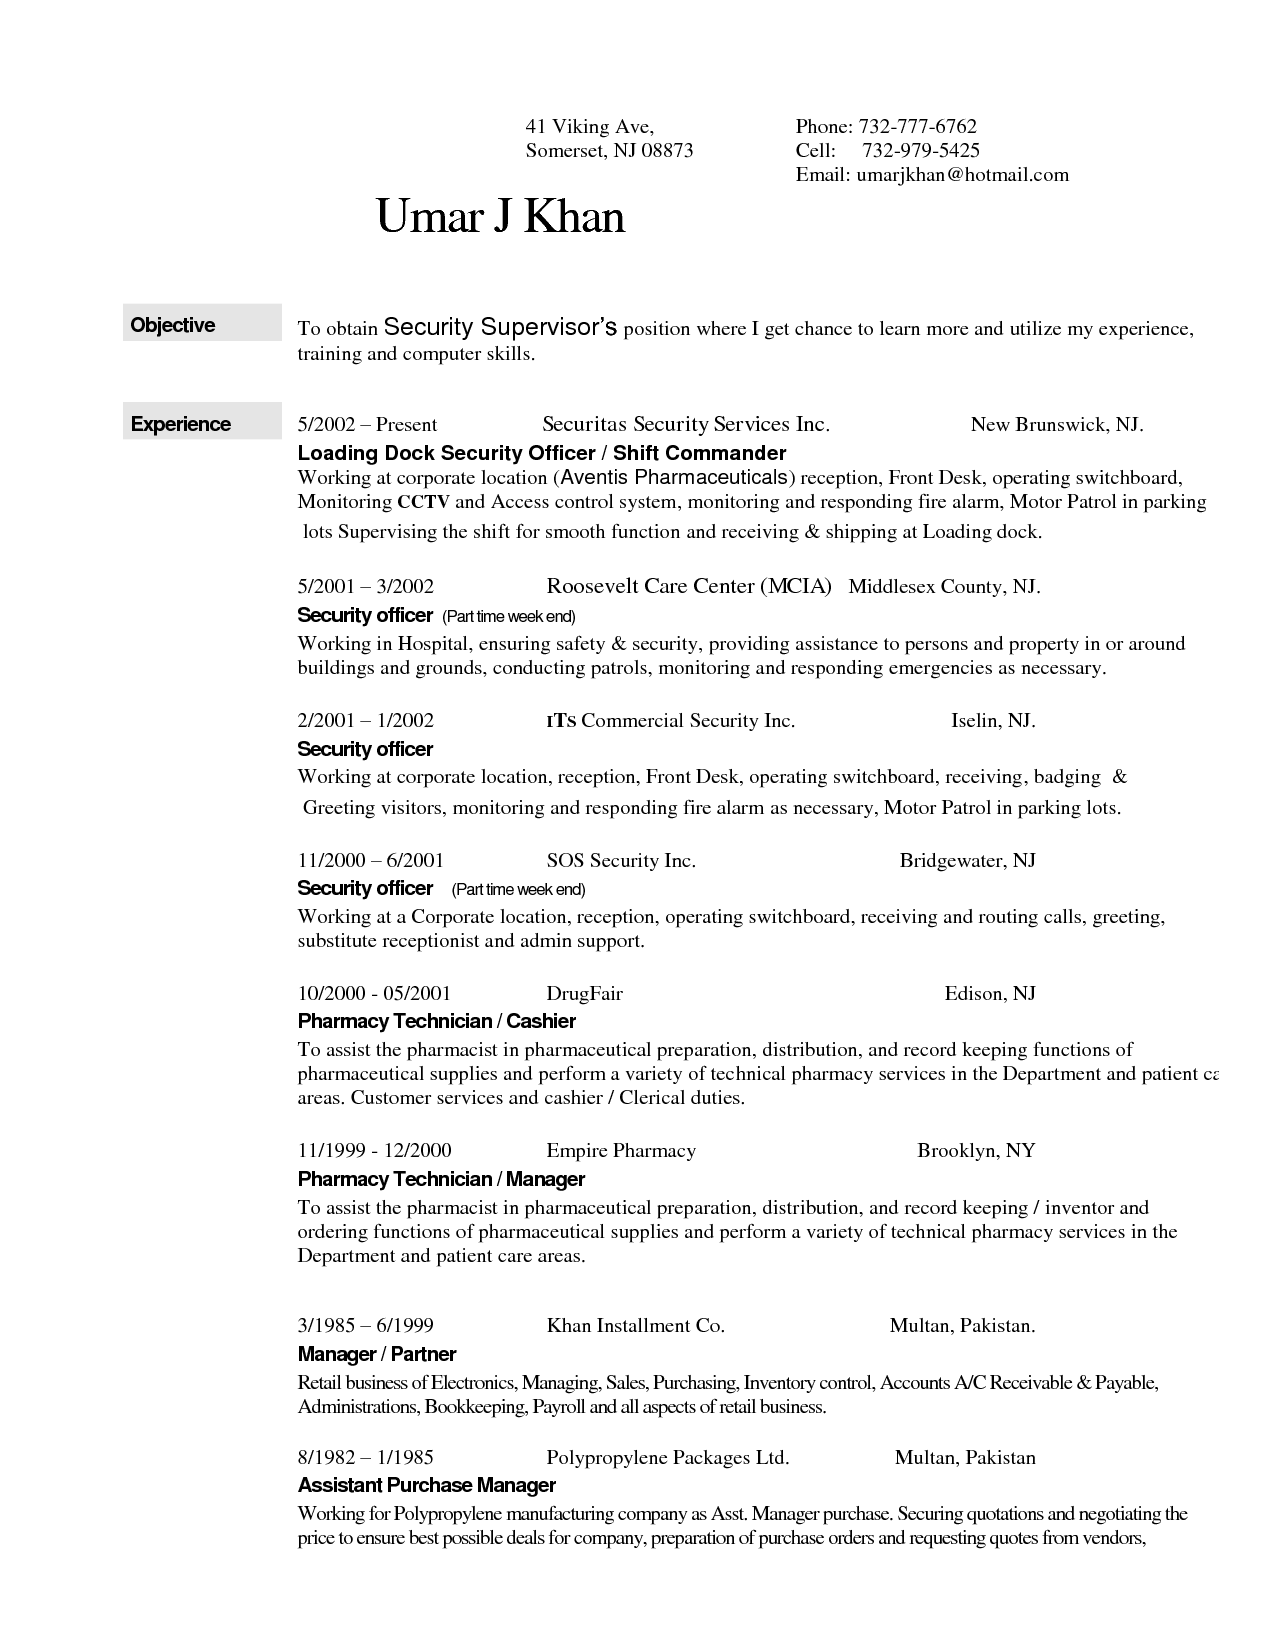 Pin By Latestresume On Latest Resume Sample Resume Resume Job Resume